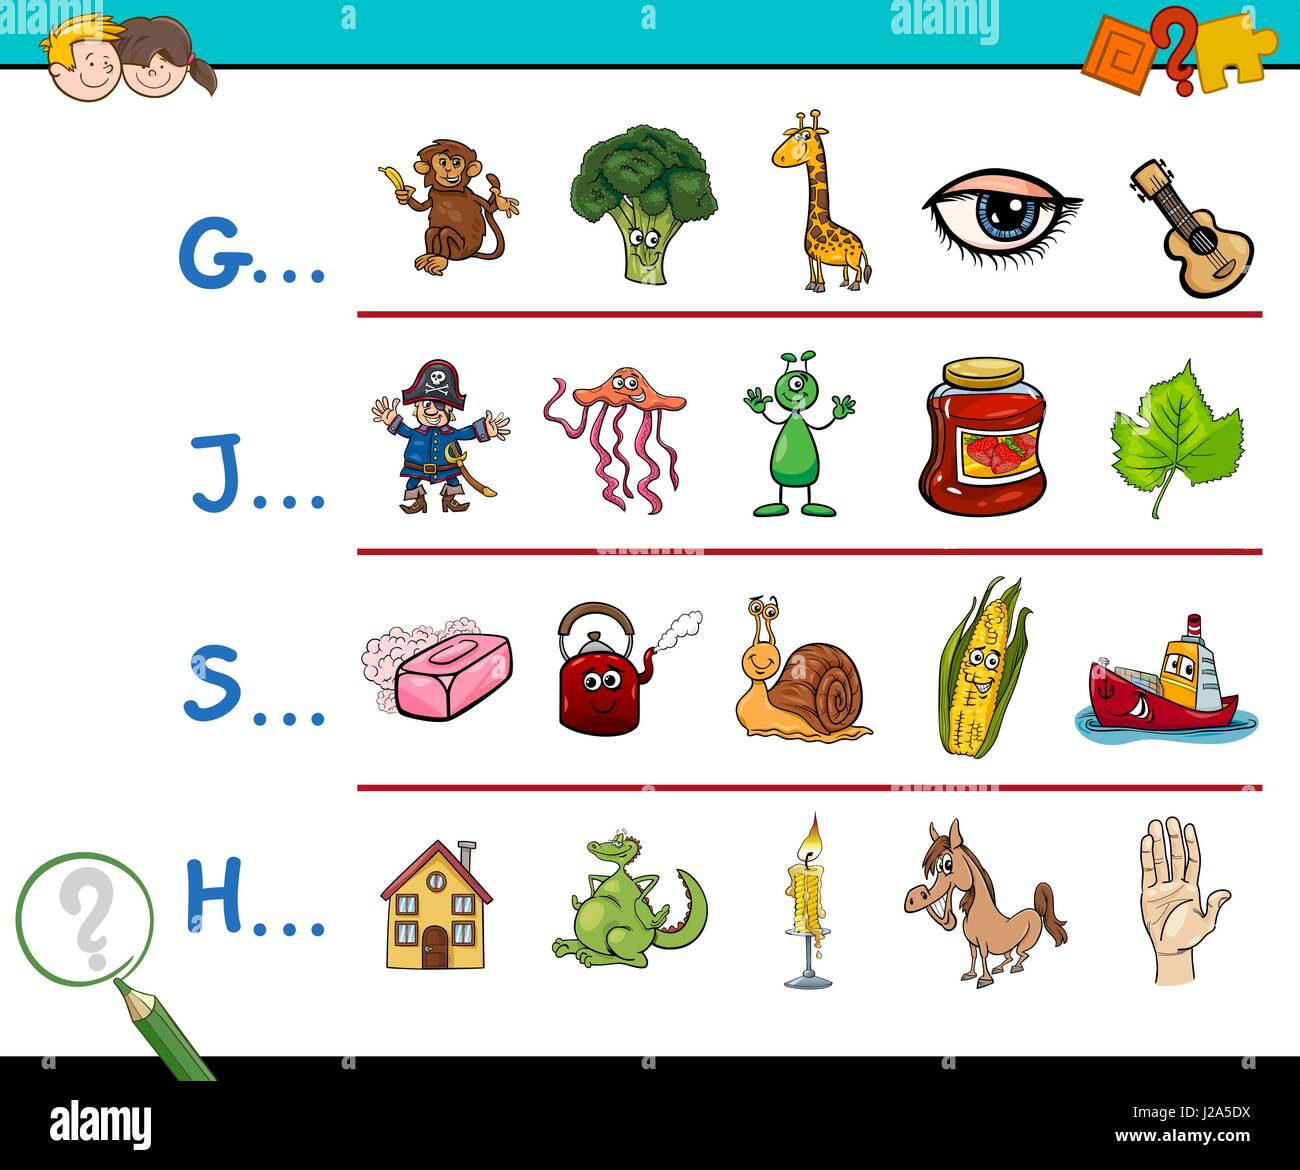 5 Letter Cartoon Characters : Names of cartoon characters that start with the letter h